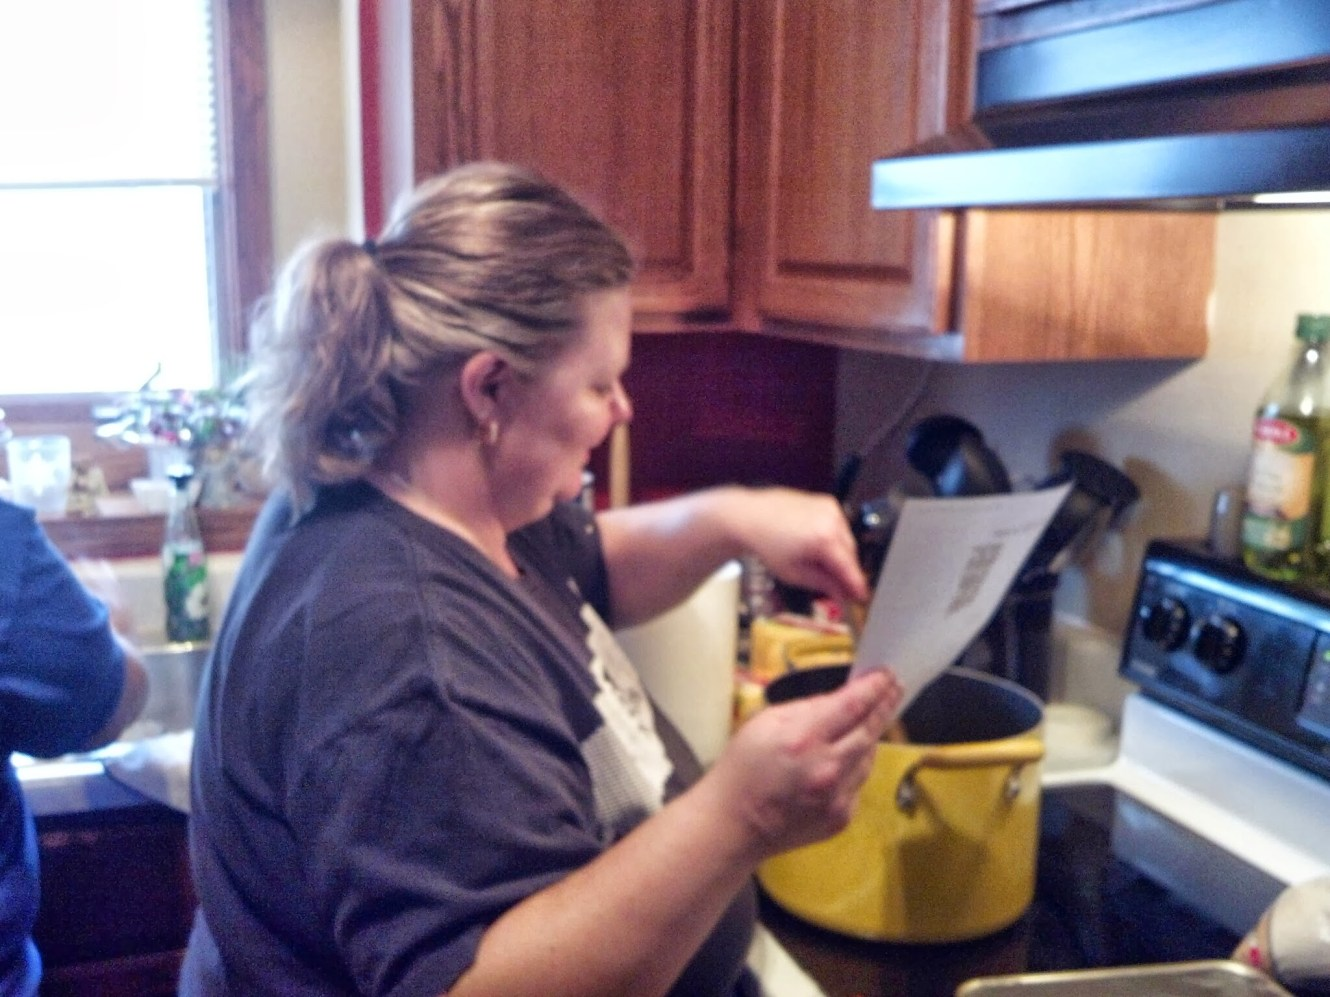 Ann stirs something. I don't know, I didn't ask. Maybe it has something to do with cookies.